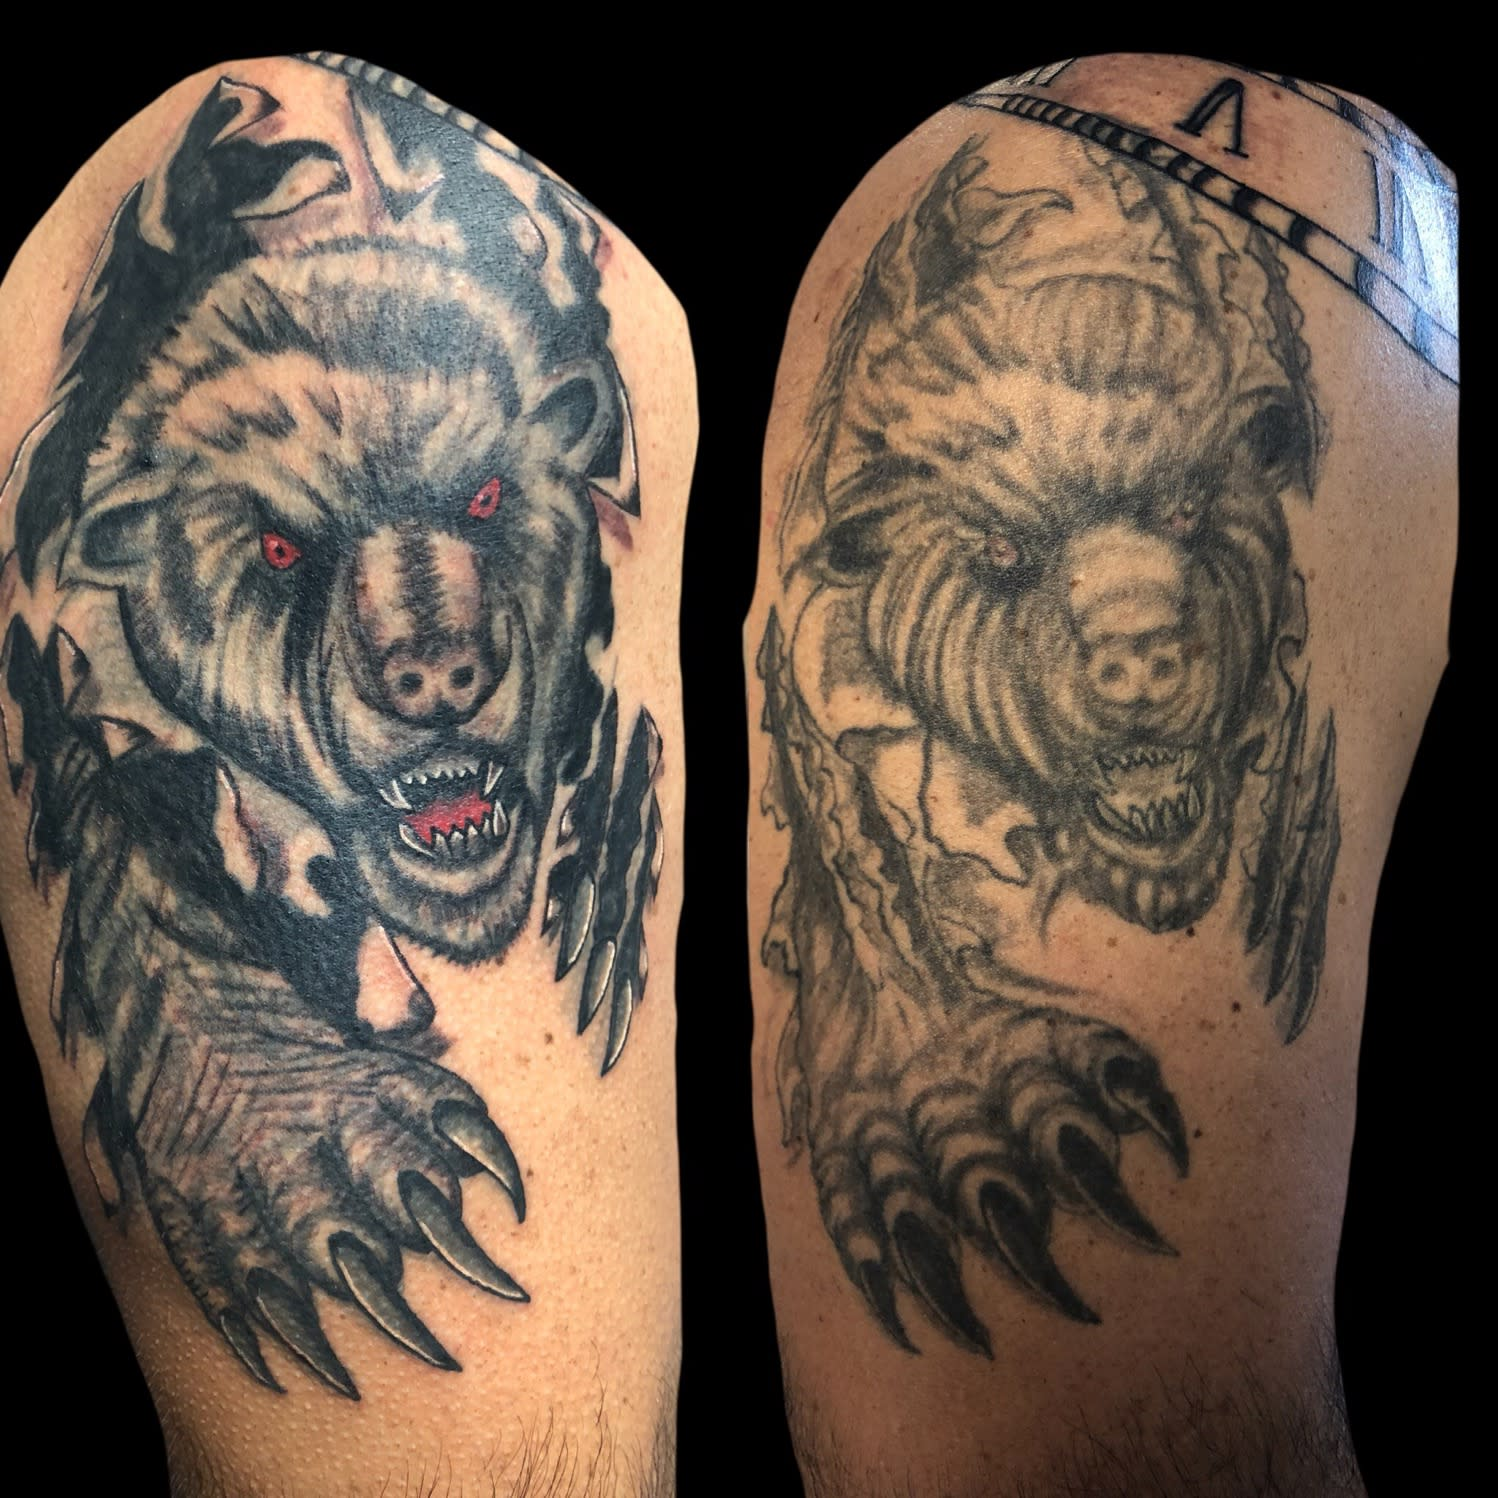 Trade Art Tattoo